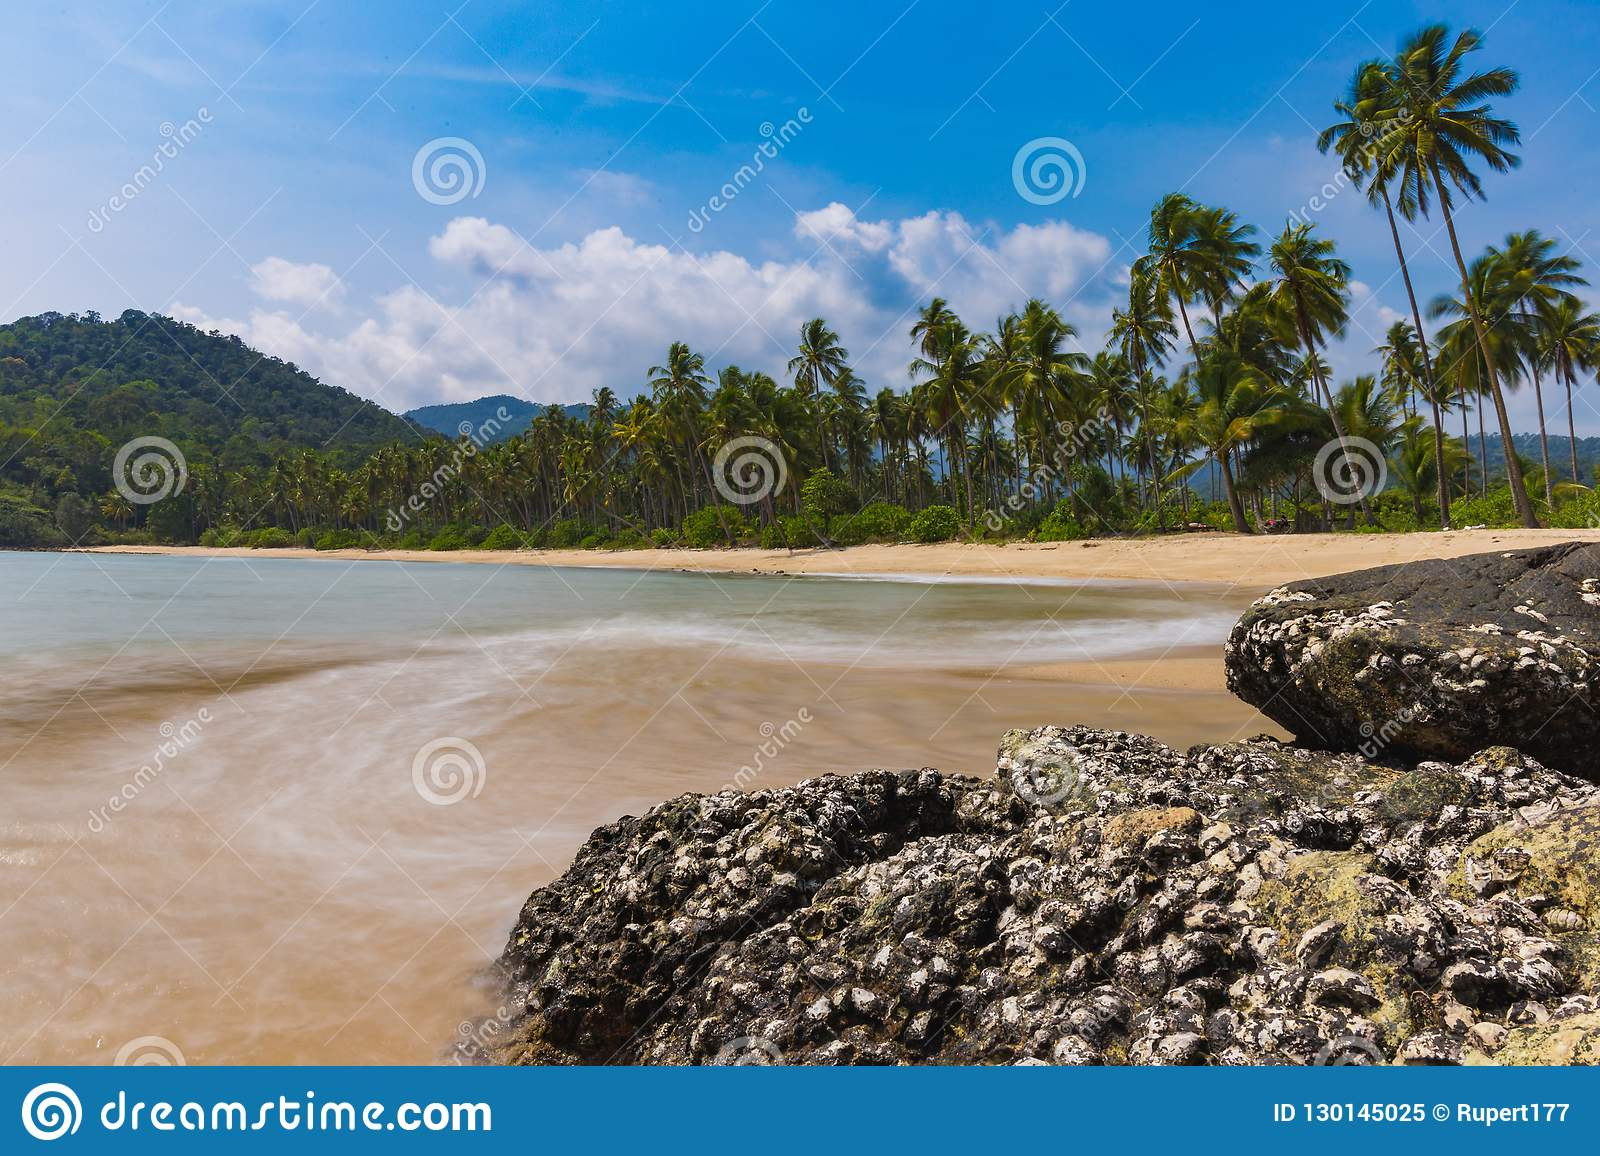 Deserted island beach with palm trees and blurred waves.